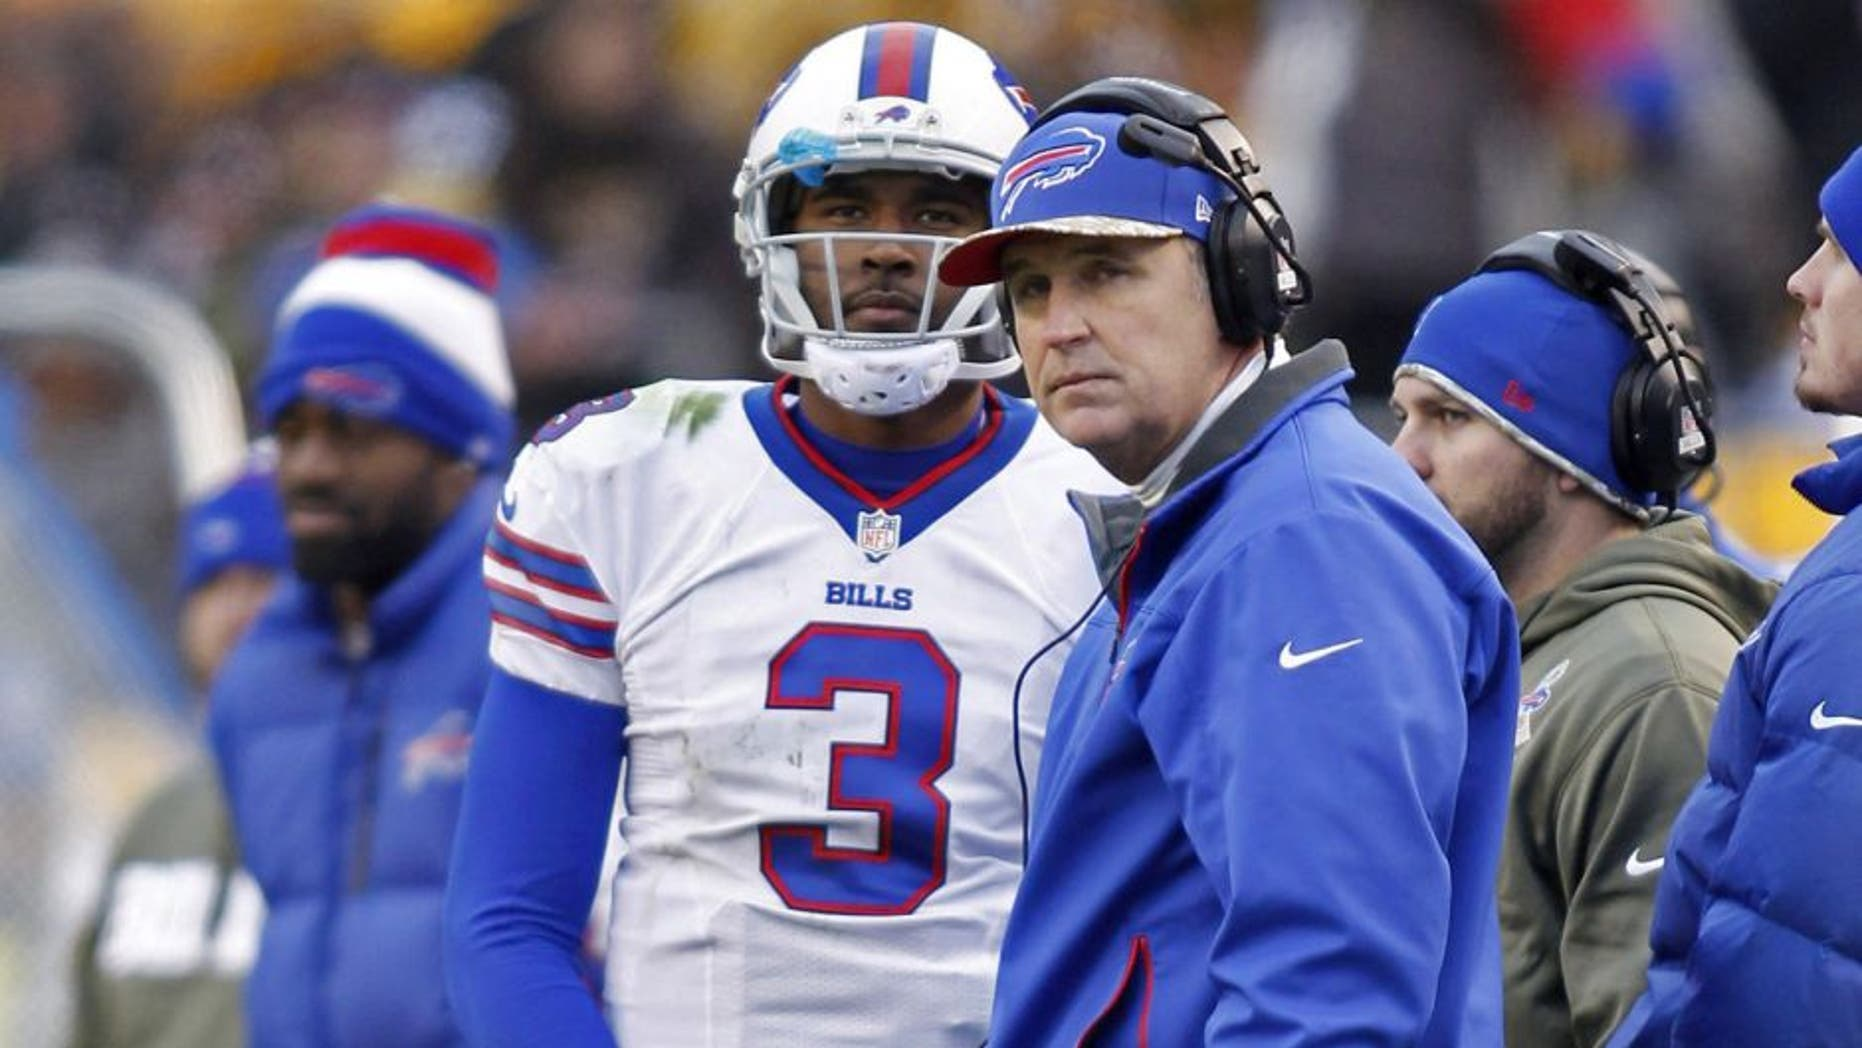 Nov 10, 2013; Pittsburgh, PA, USA; Buffalo Bills quarterback EJ Manuel (3) and Buffalo Bills head coach Doug Marrone (right) watch a scoreboard replay against the Pittsburgh Steelers during the fourth quarter at Heinz Field. The Pittsburgh Steelers won 23-10. Mandatory Credit: Charles LeClaire-USA TODAY Sports